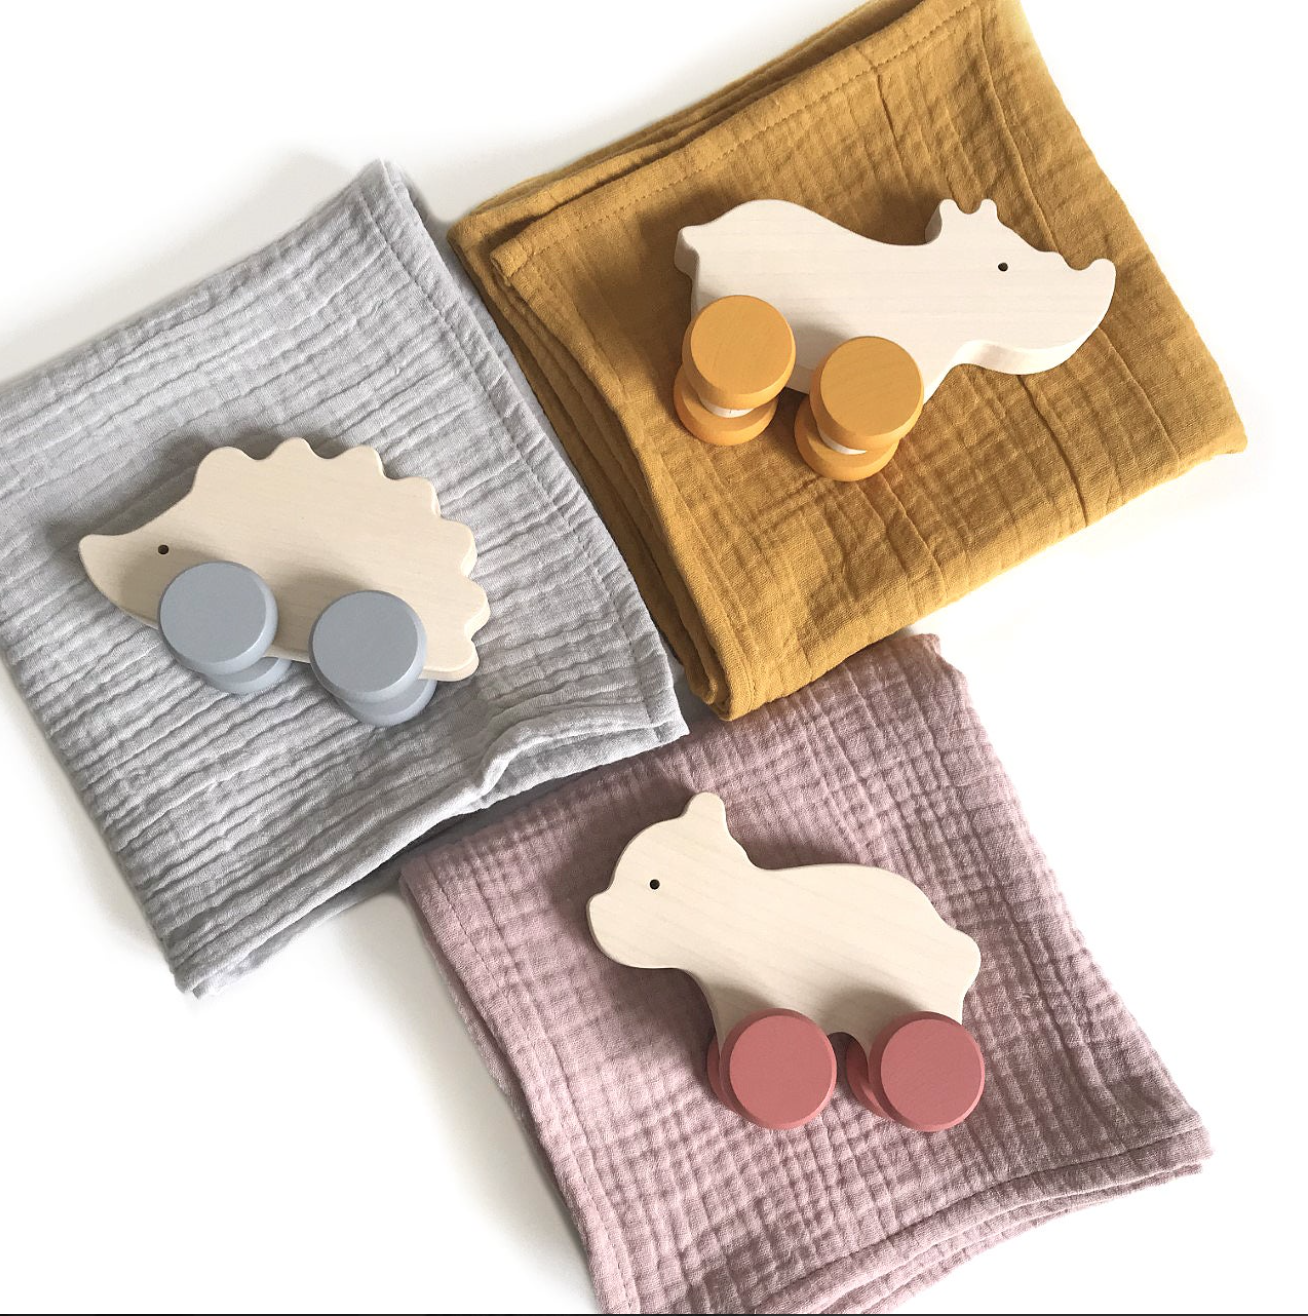 Crib Bed Sheet Gift Set And Wooden Toy  H 9cm W 13cm P 4.5cm